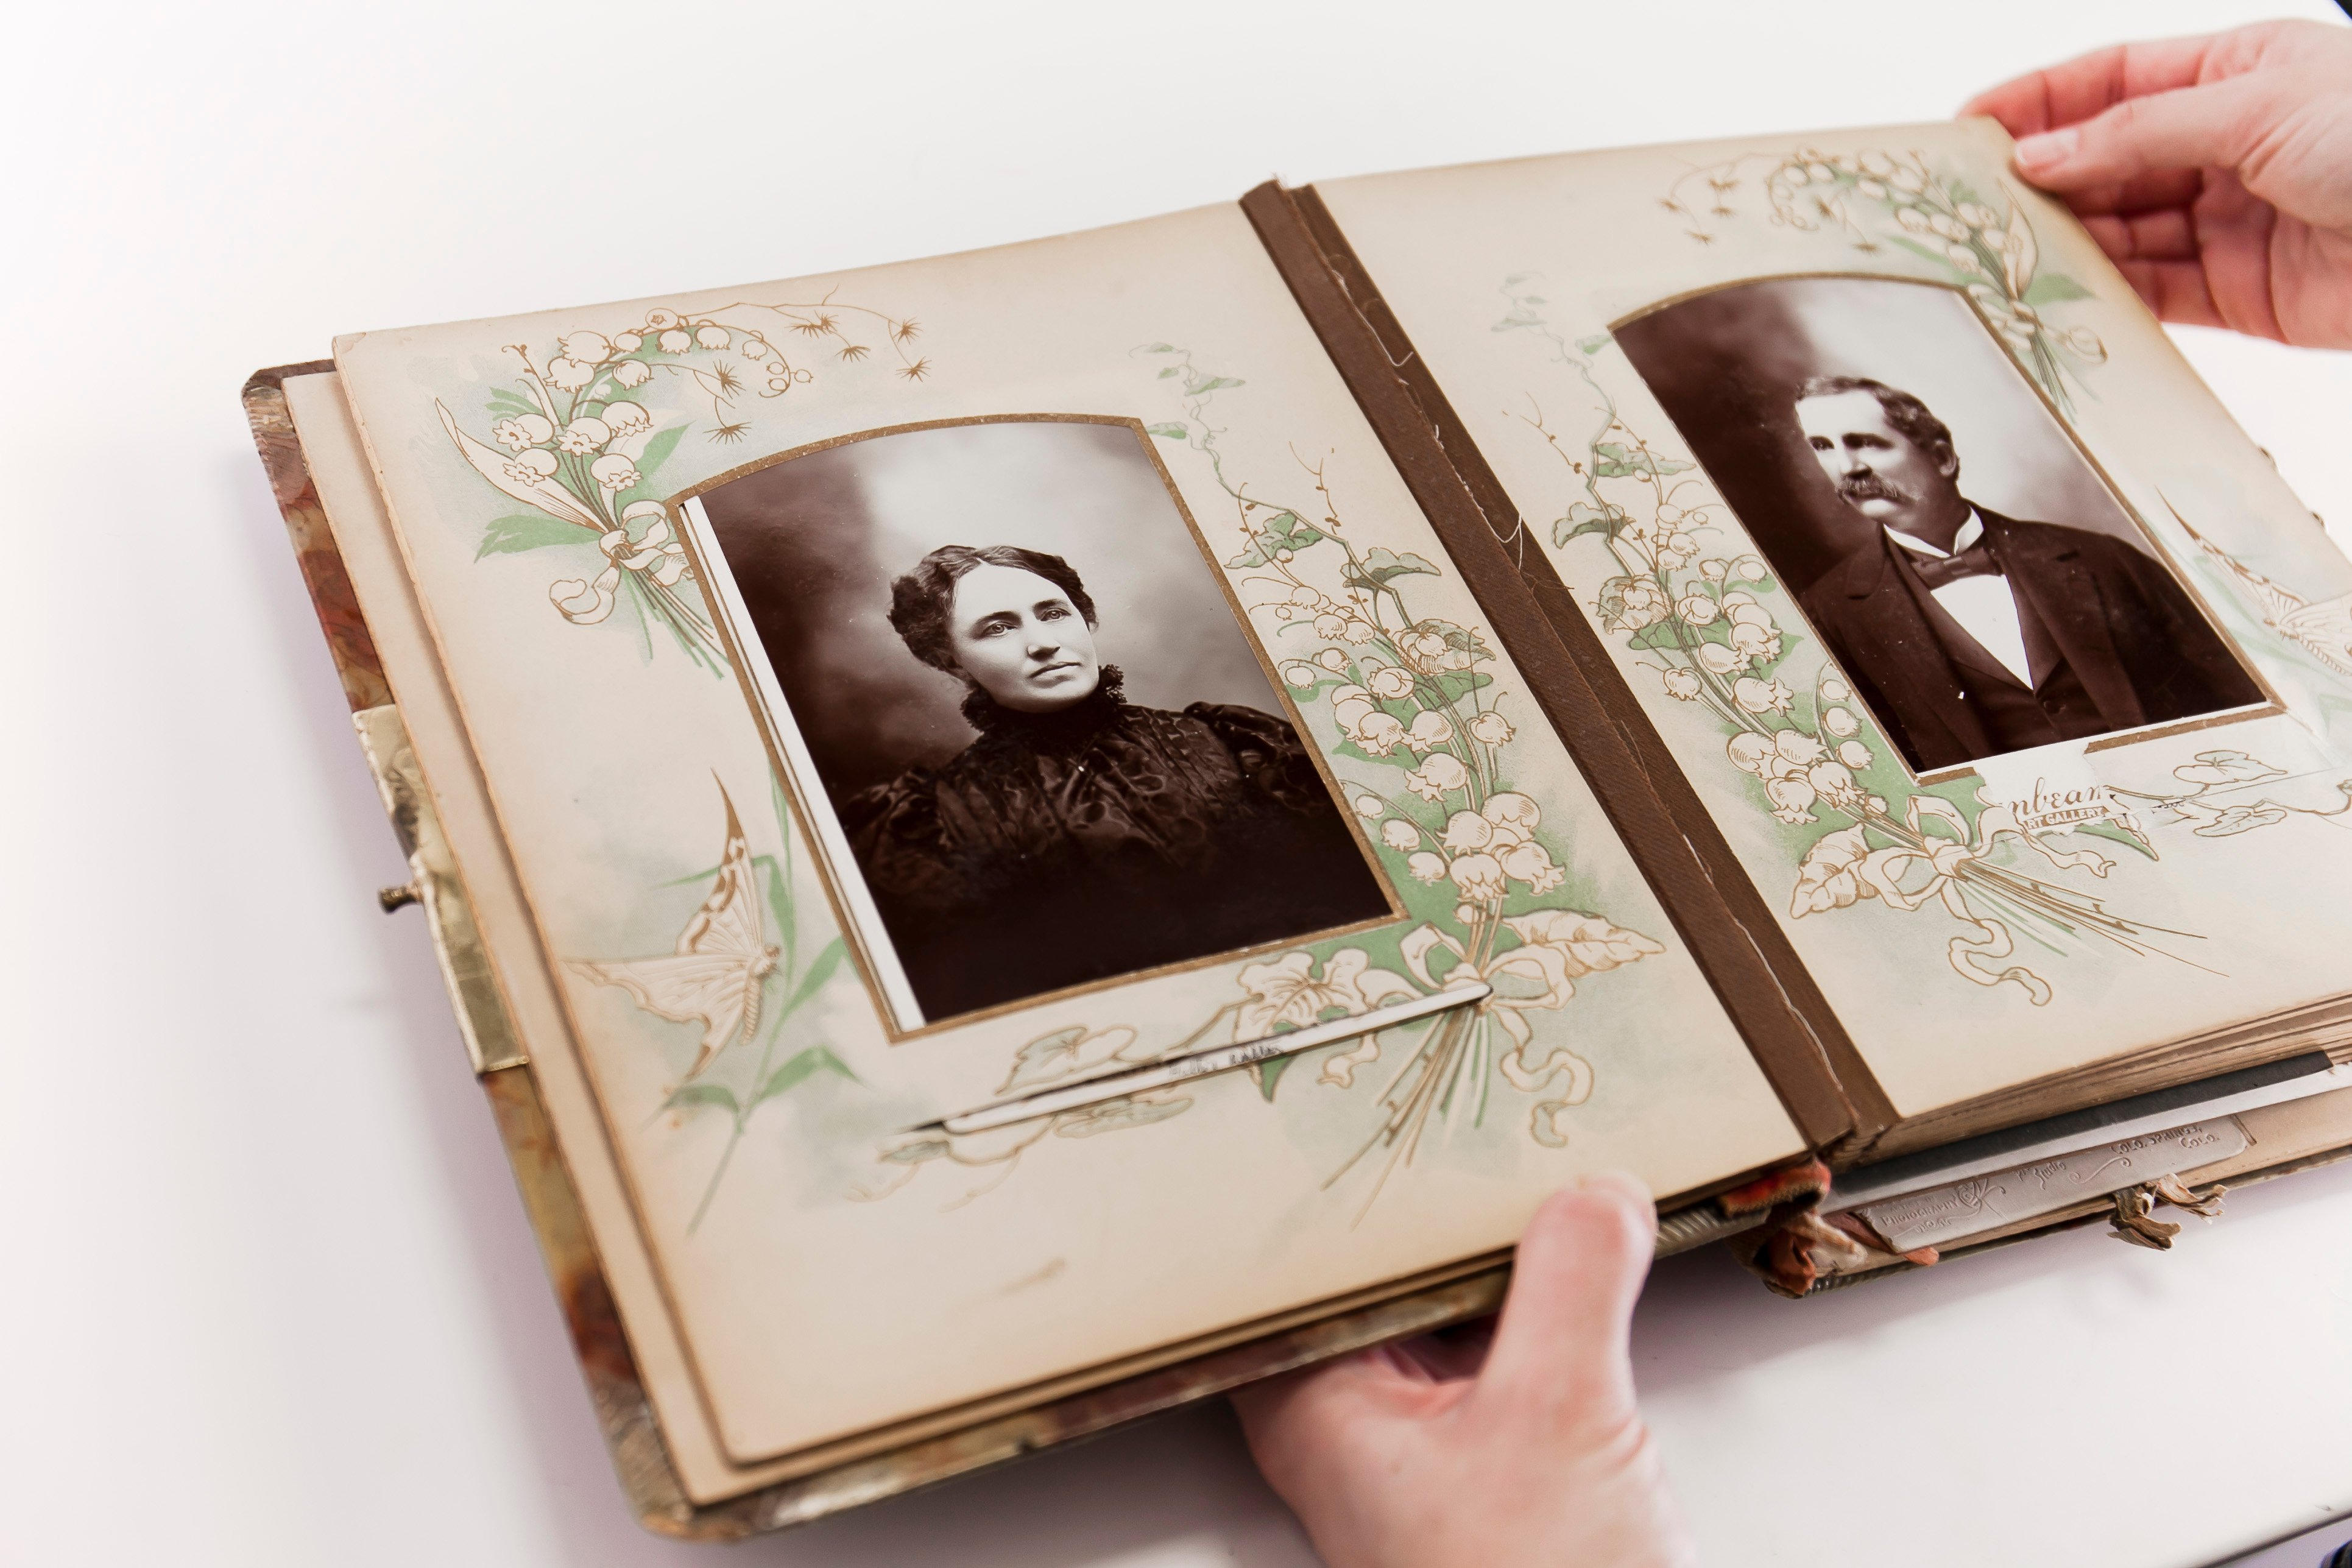 Vintage Photo Album with Man and Woman